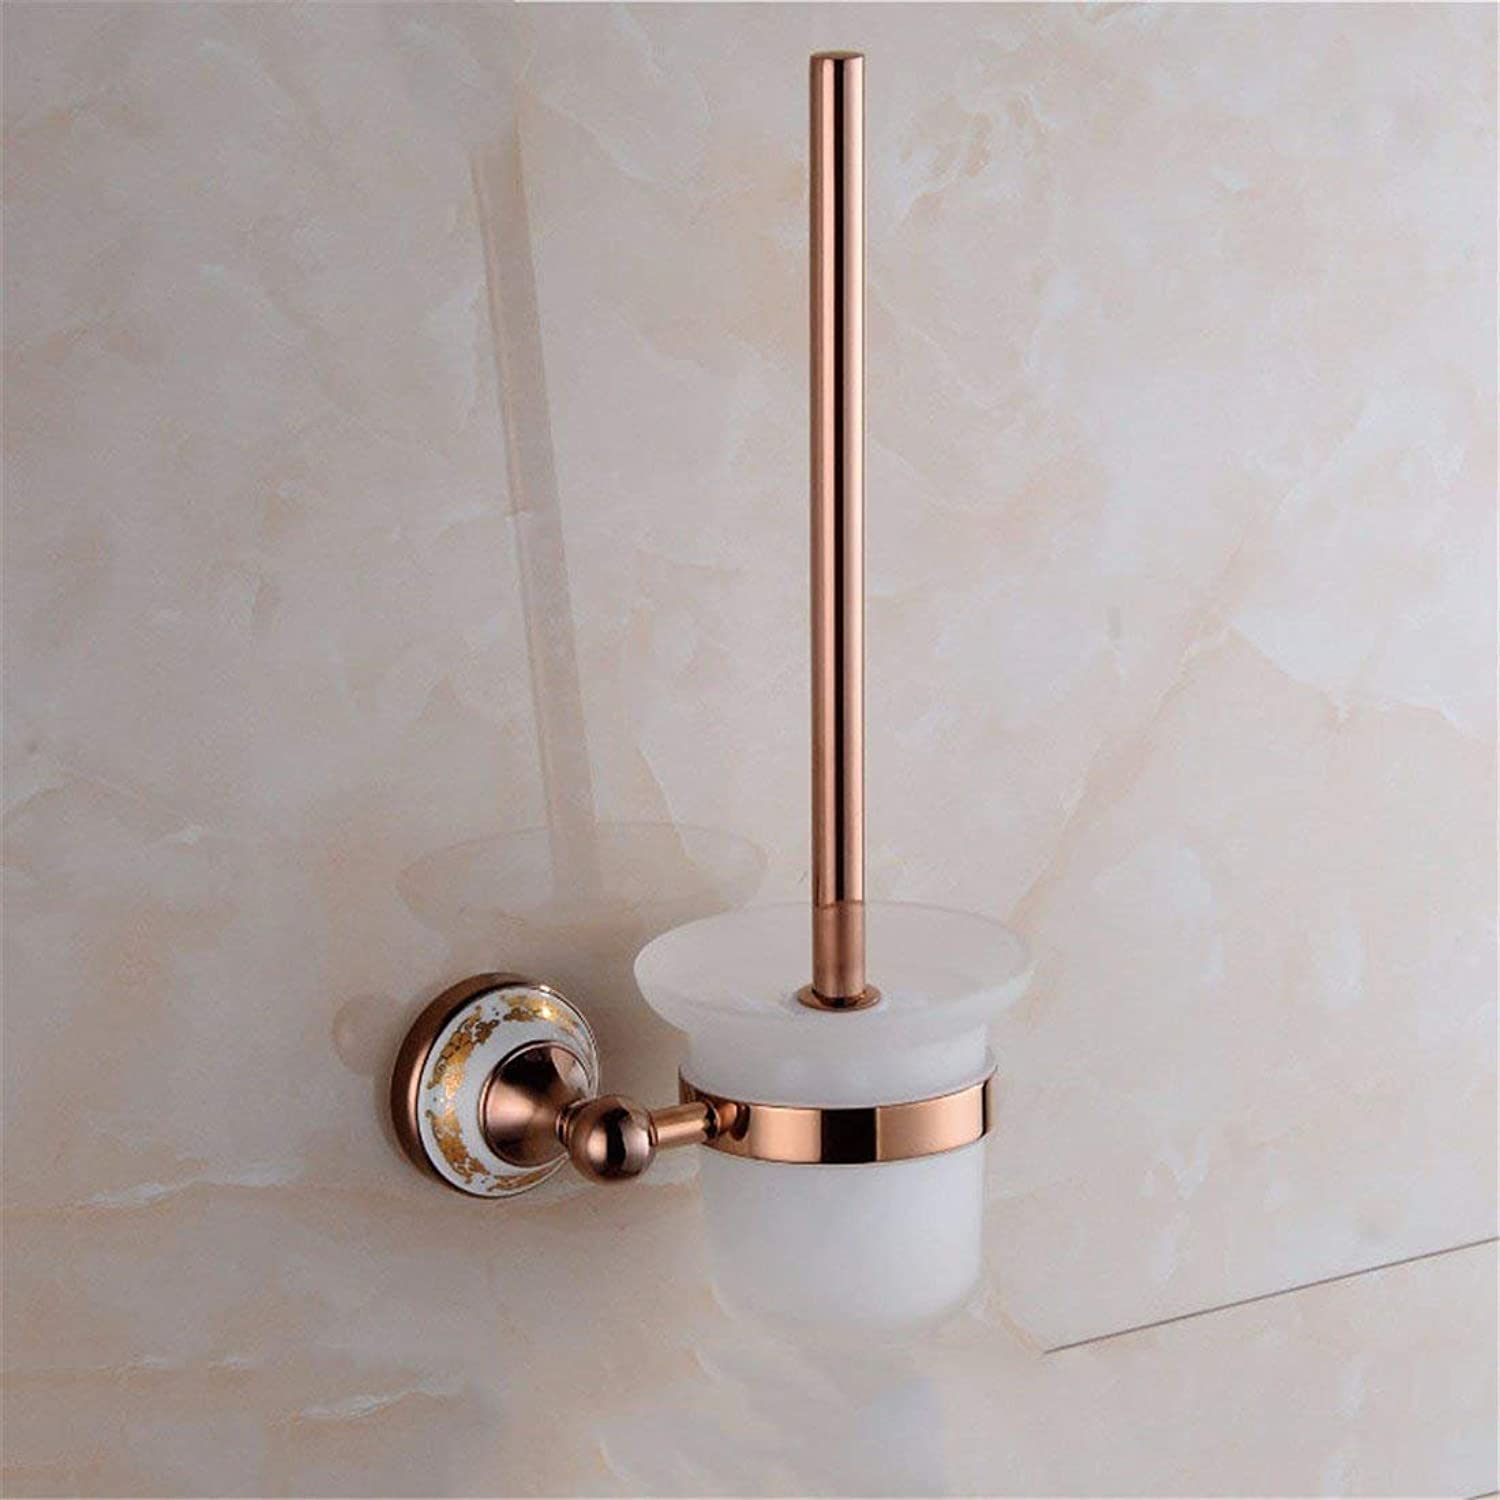 European-Style, gold Ceramic Pink Costume Accessories of Baths Dry-Towels Folding,Toilet Brush